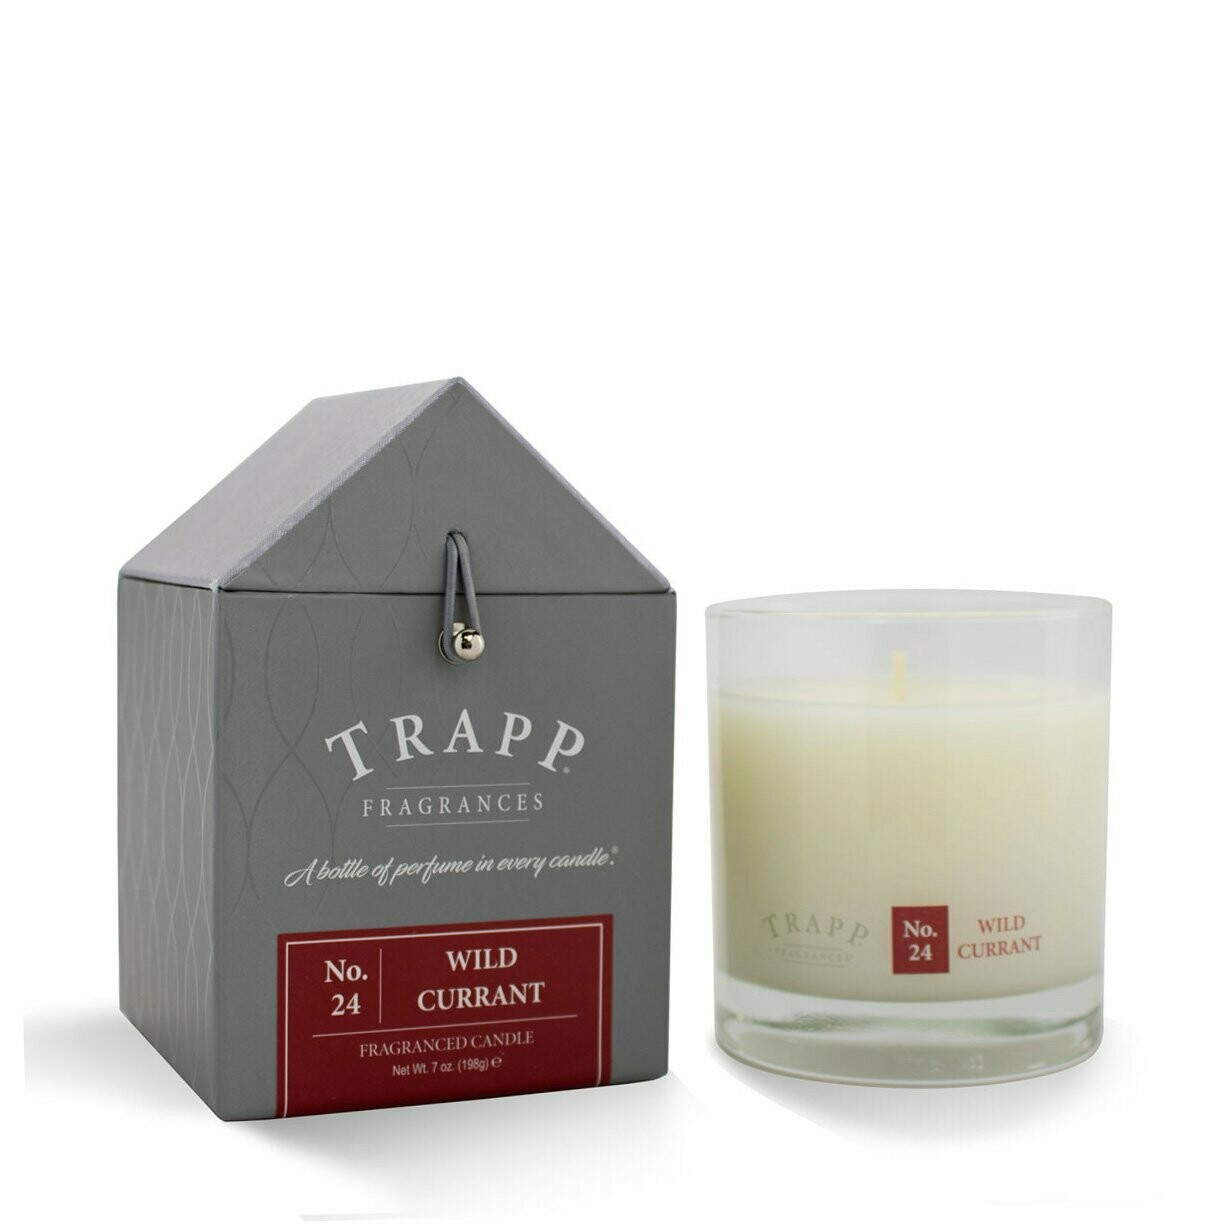 Trapp Candle No. 24 Wild Currant